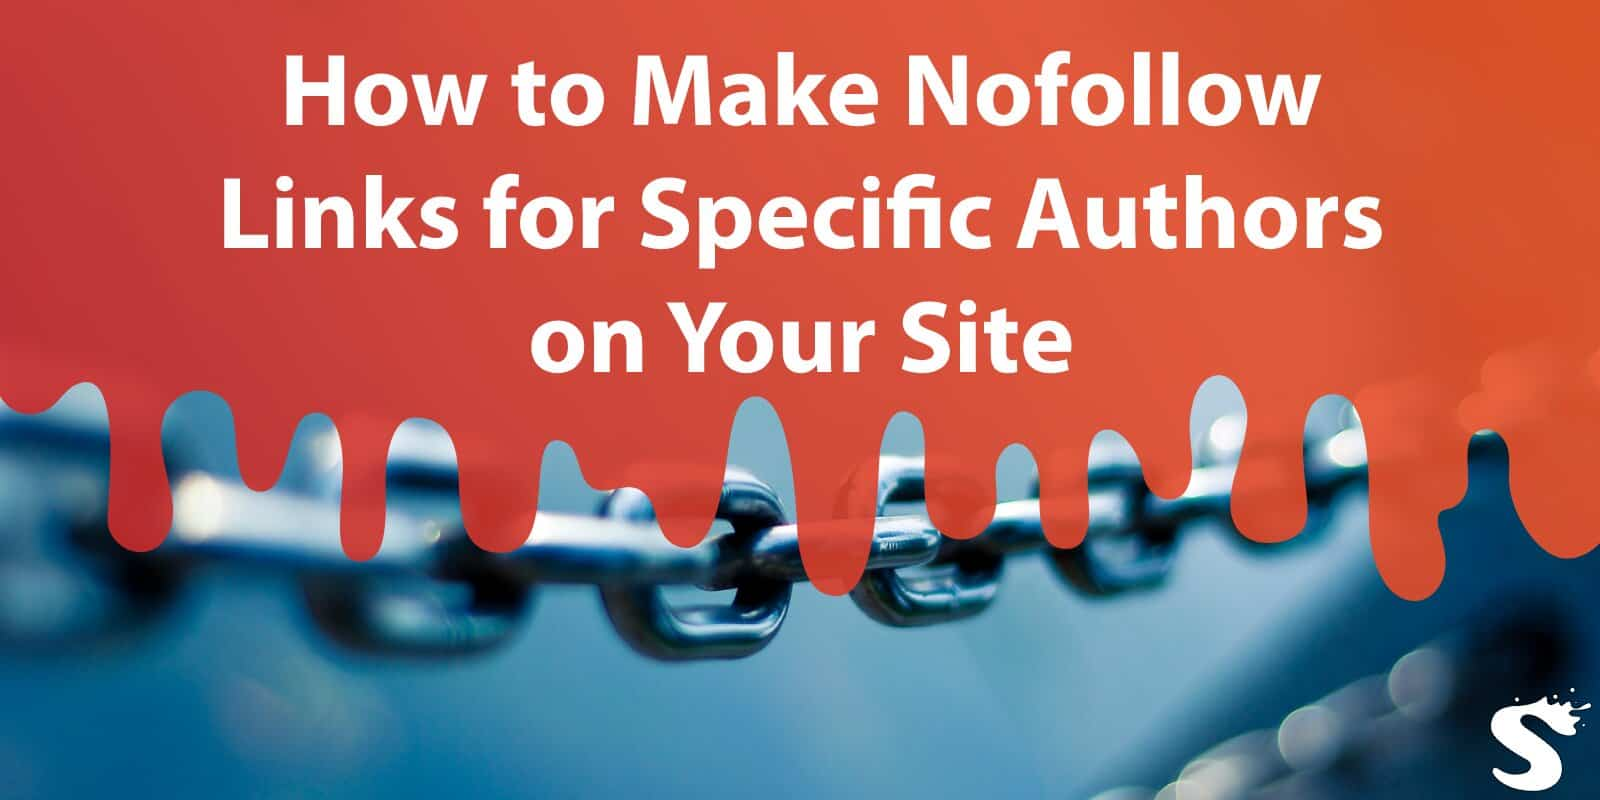 How to Make Nofollow Links for Specific Authors on Your Site